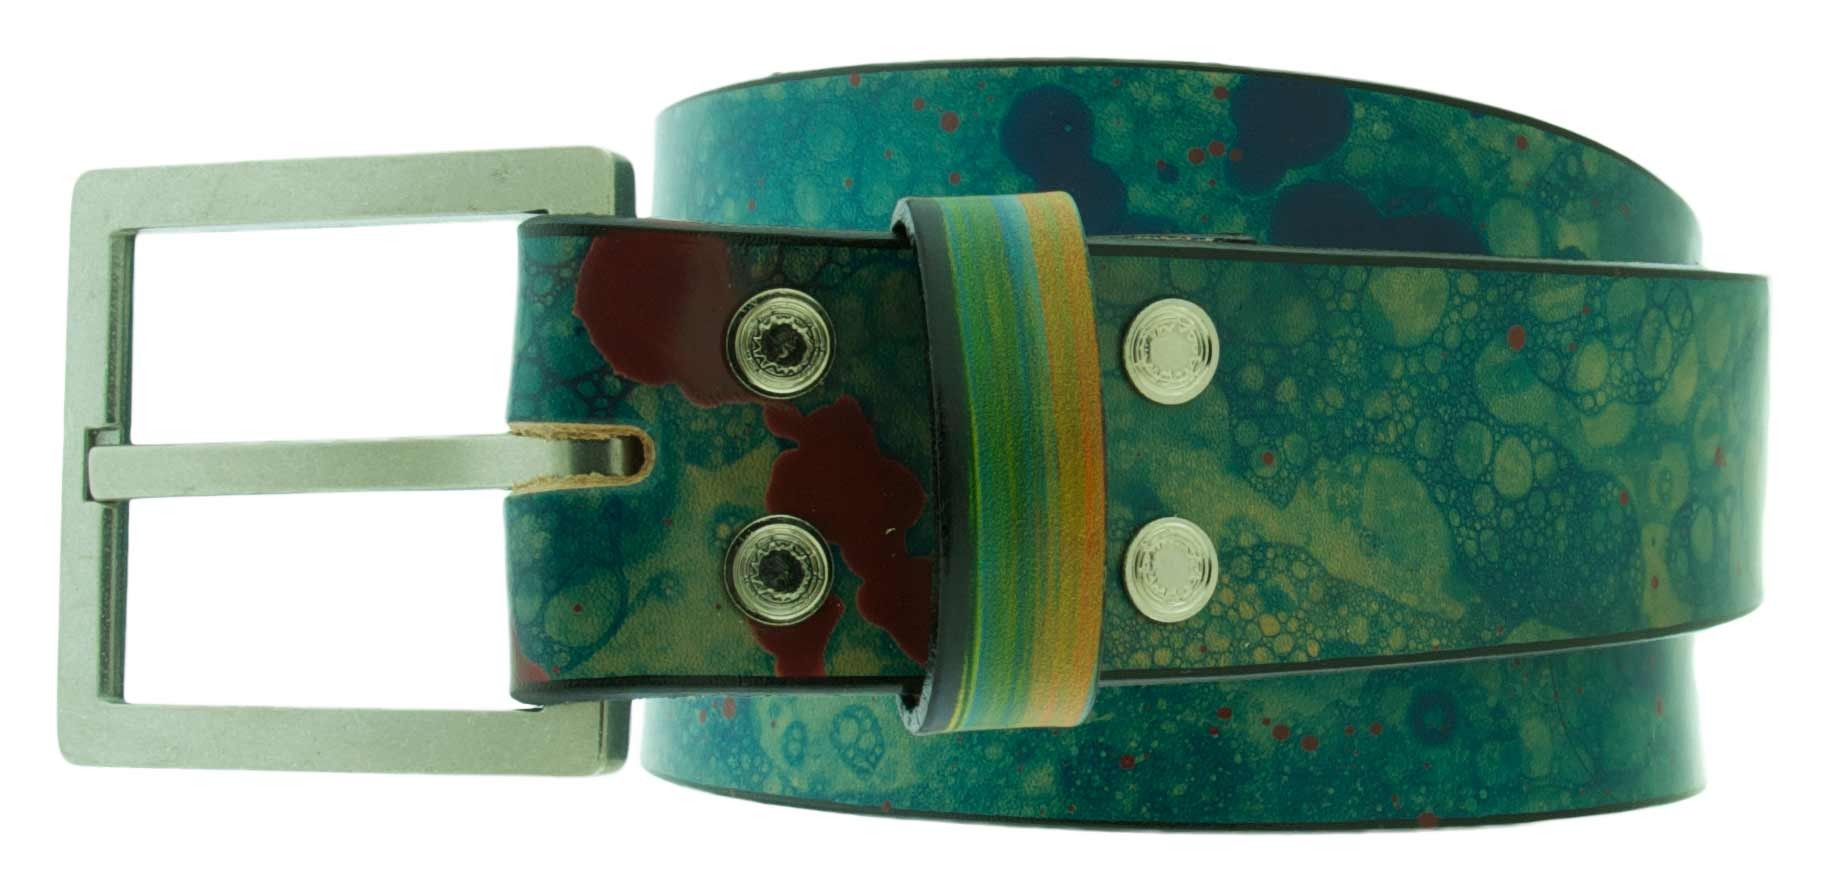 One-of-a-Kind Belt #8